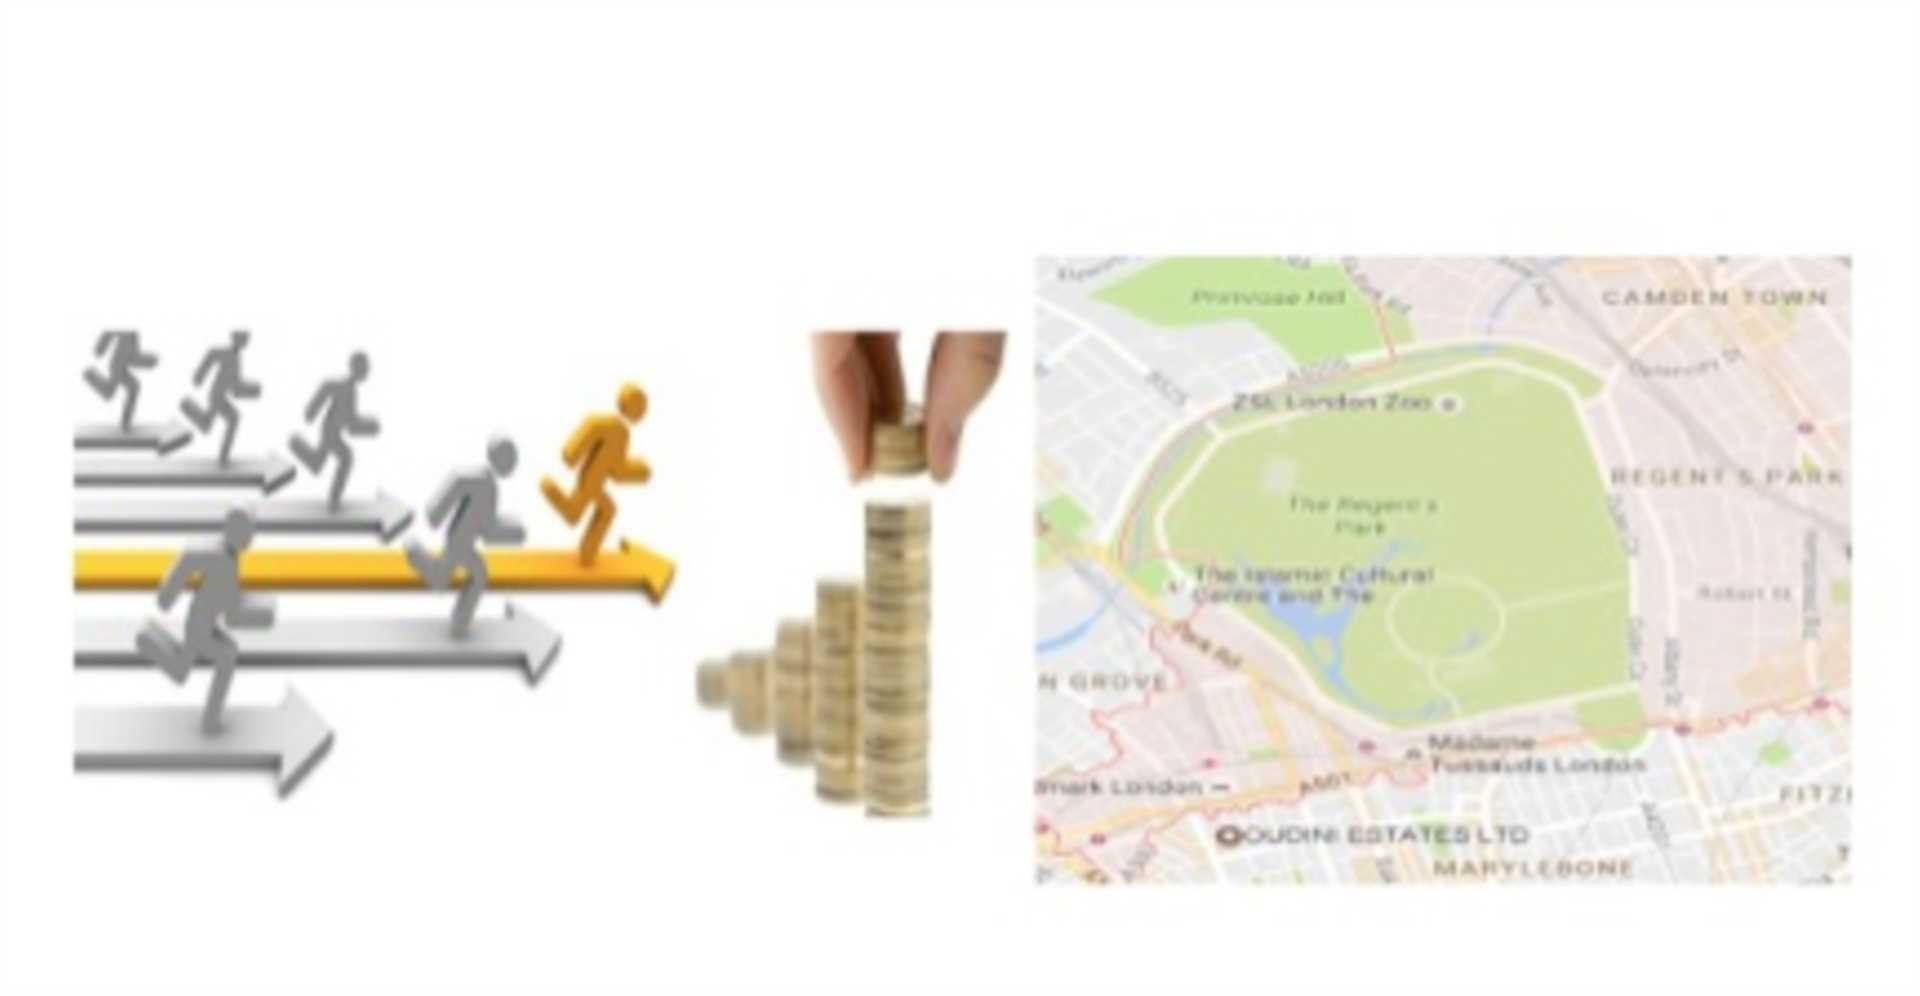 Magnifying the large NW1 area`s investment prospects – on your marks, get set, and go! Should we be sprinting towards Marylebone`s NW1 territory, or are there better buy-to-let properties to be found between Regent`s Park and Camden Town`s NW1 perimeters?